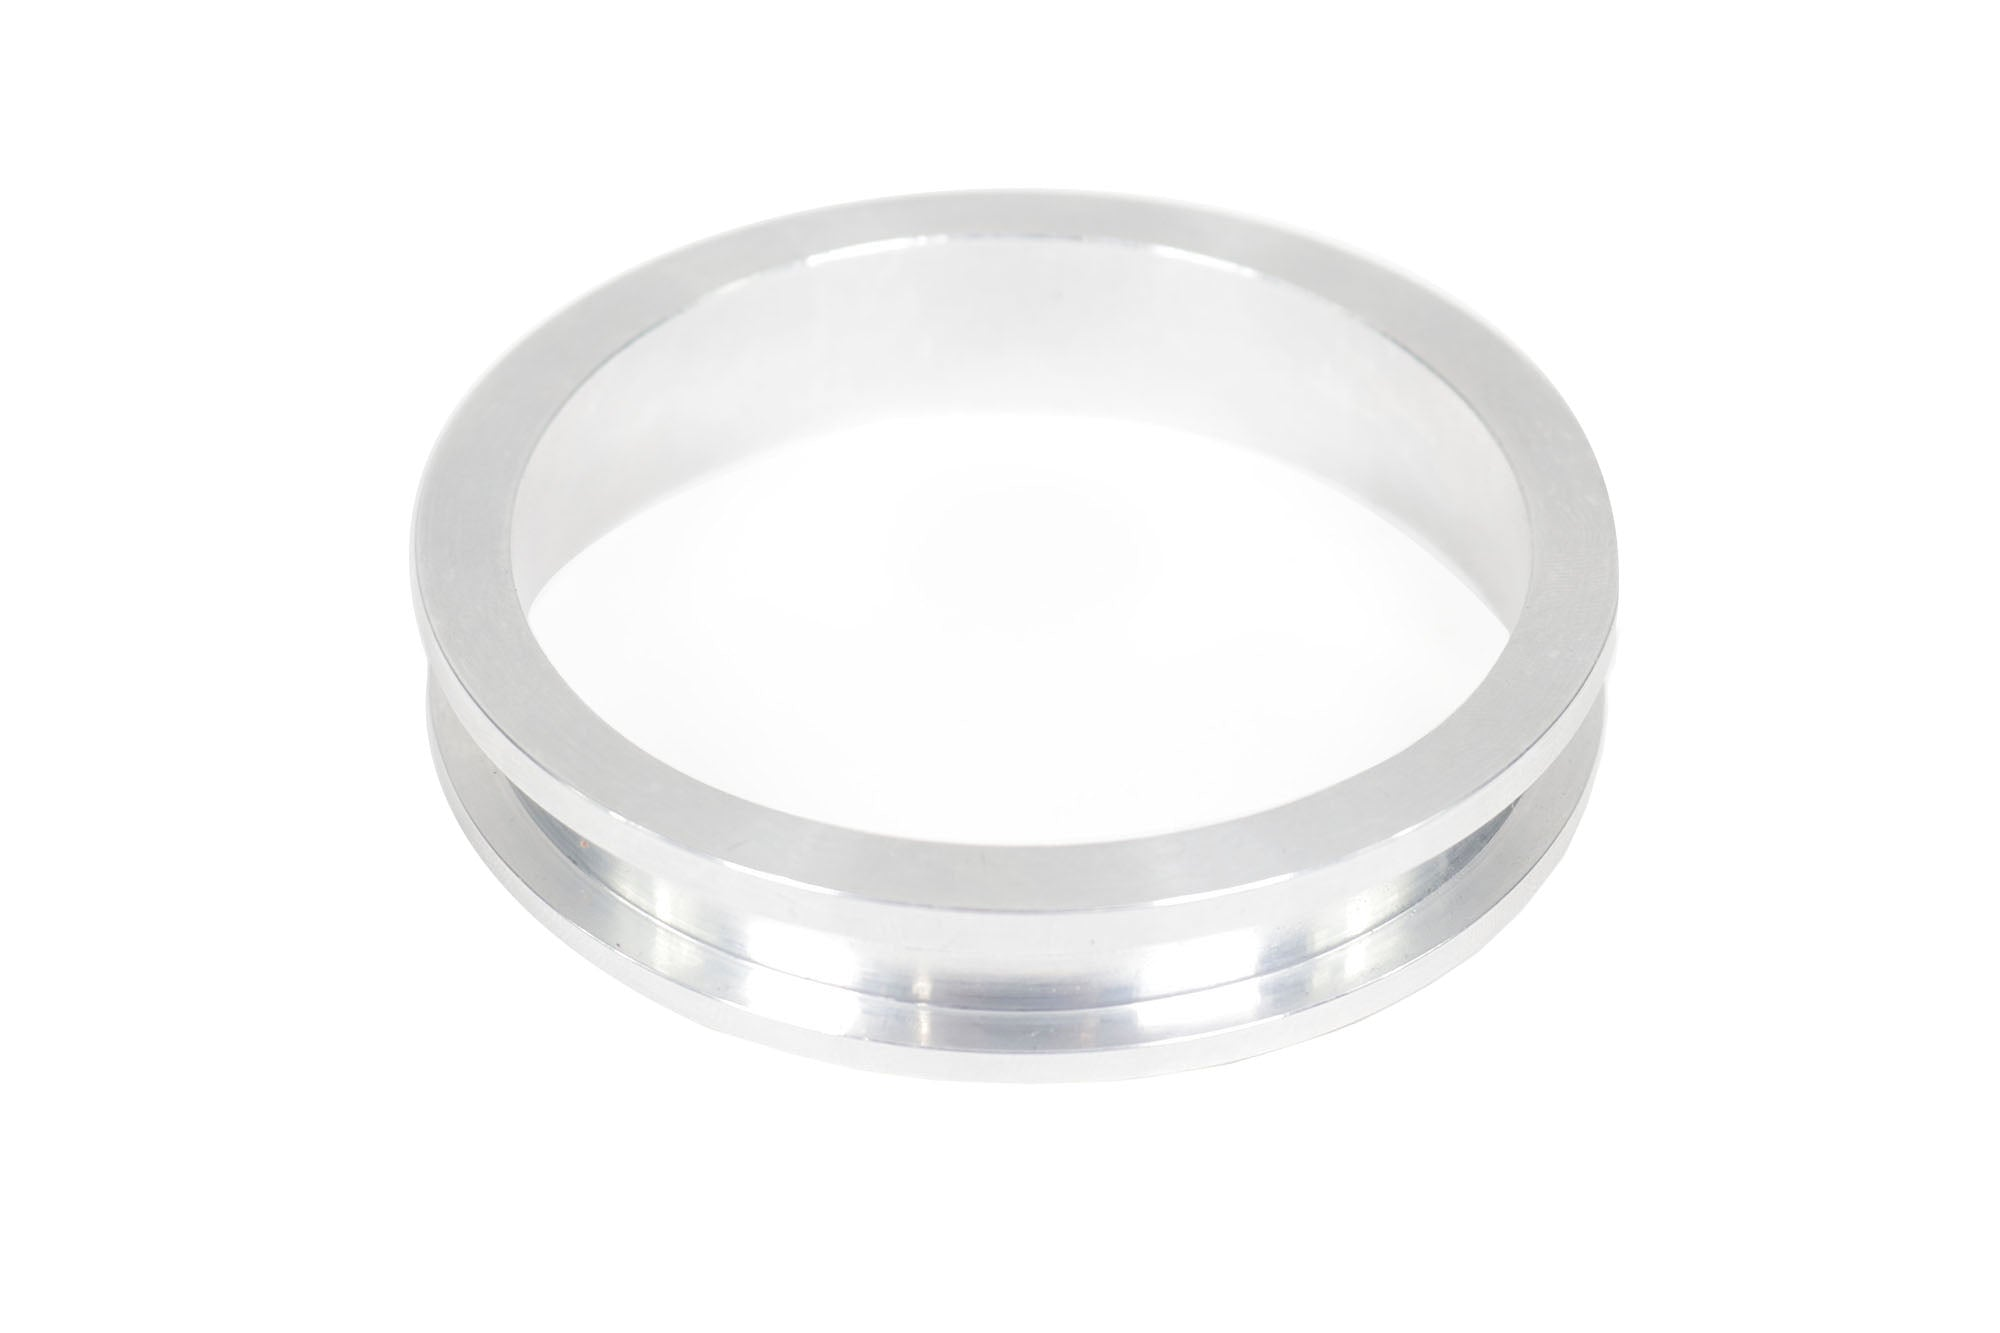 "Motion Raceworks T4 3 5/8"" Turbine Discharge Flange (6061 Aluminum) For 3.5"" Downpipe-Motion Raceworks-Motion Raceworks"